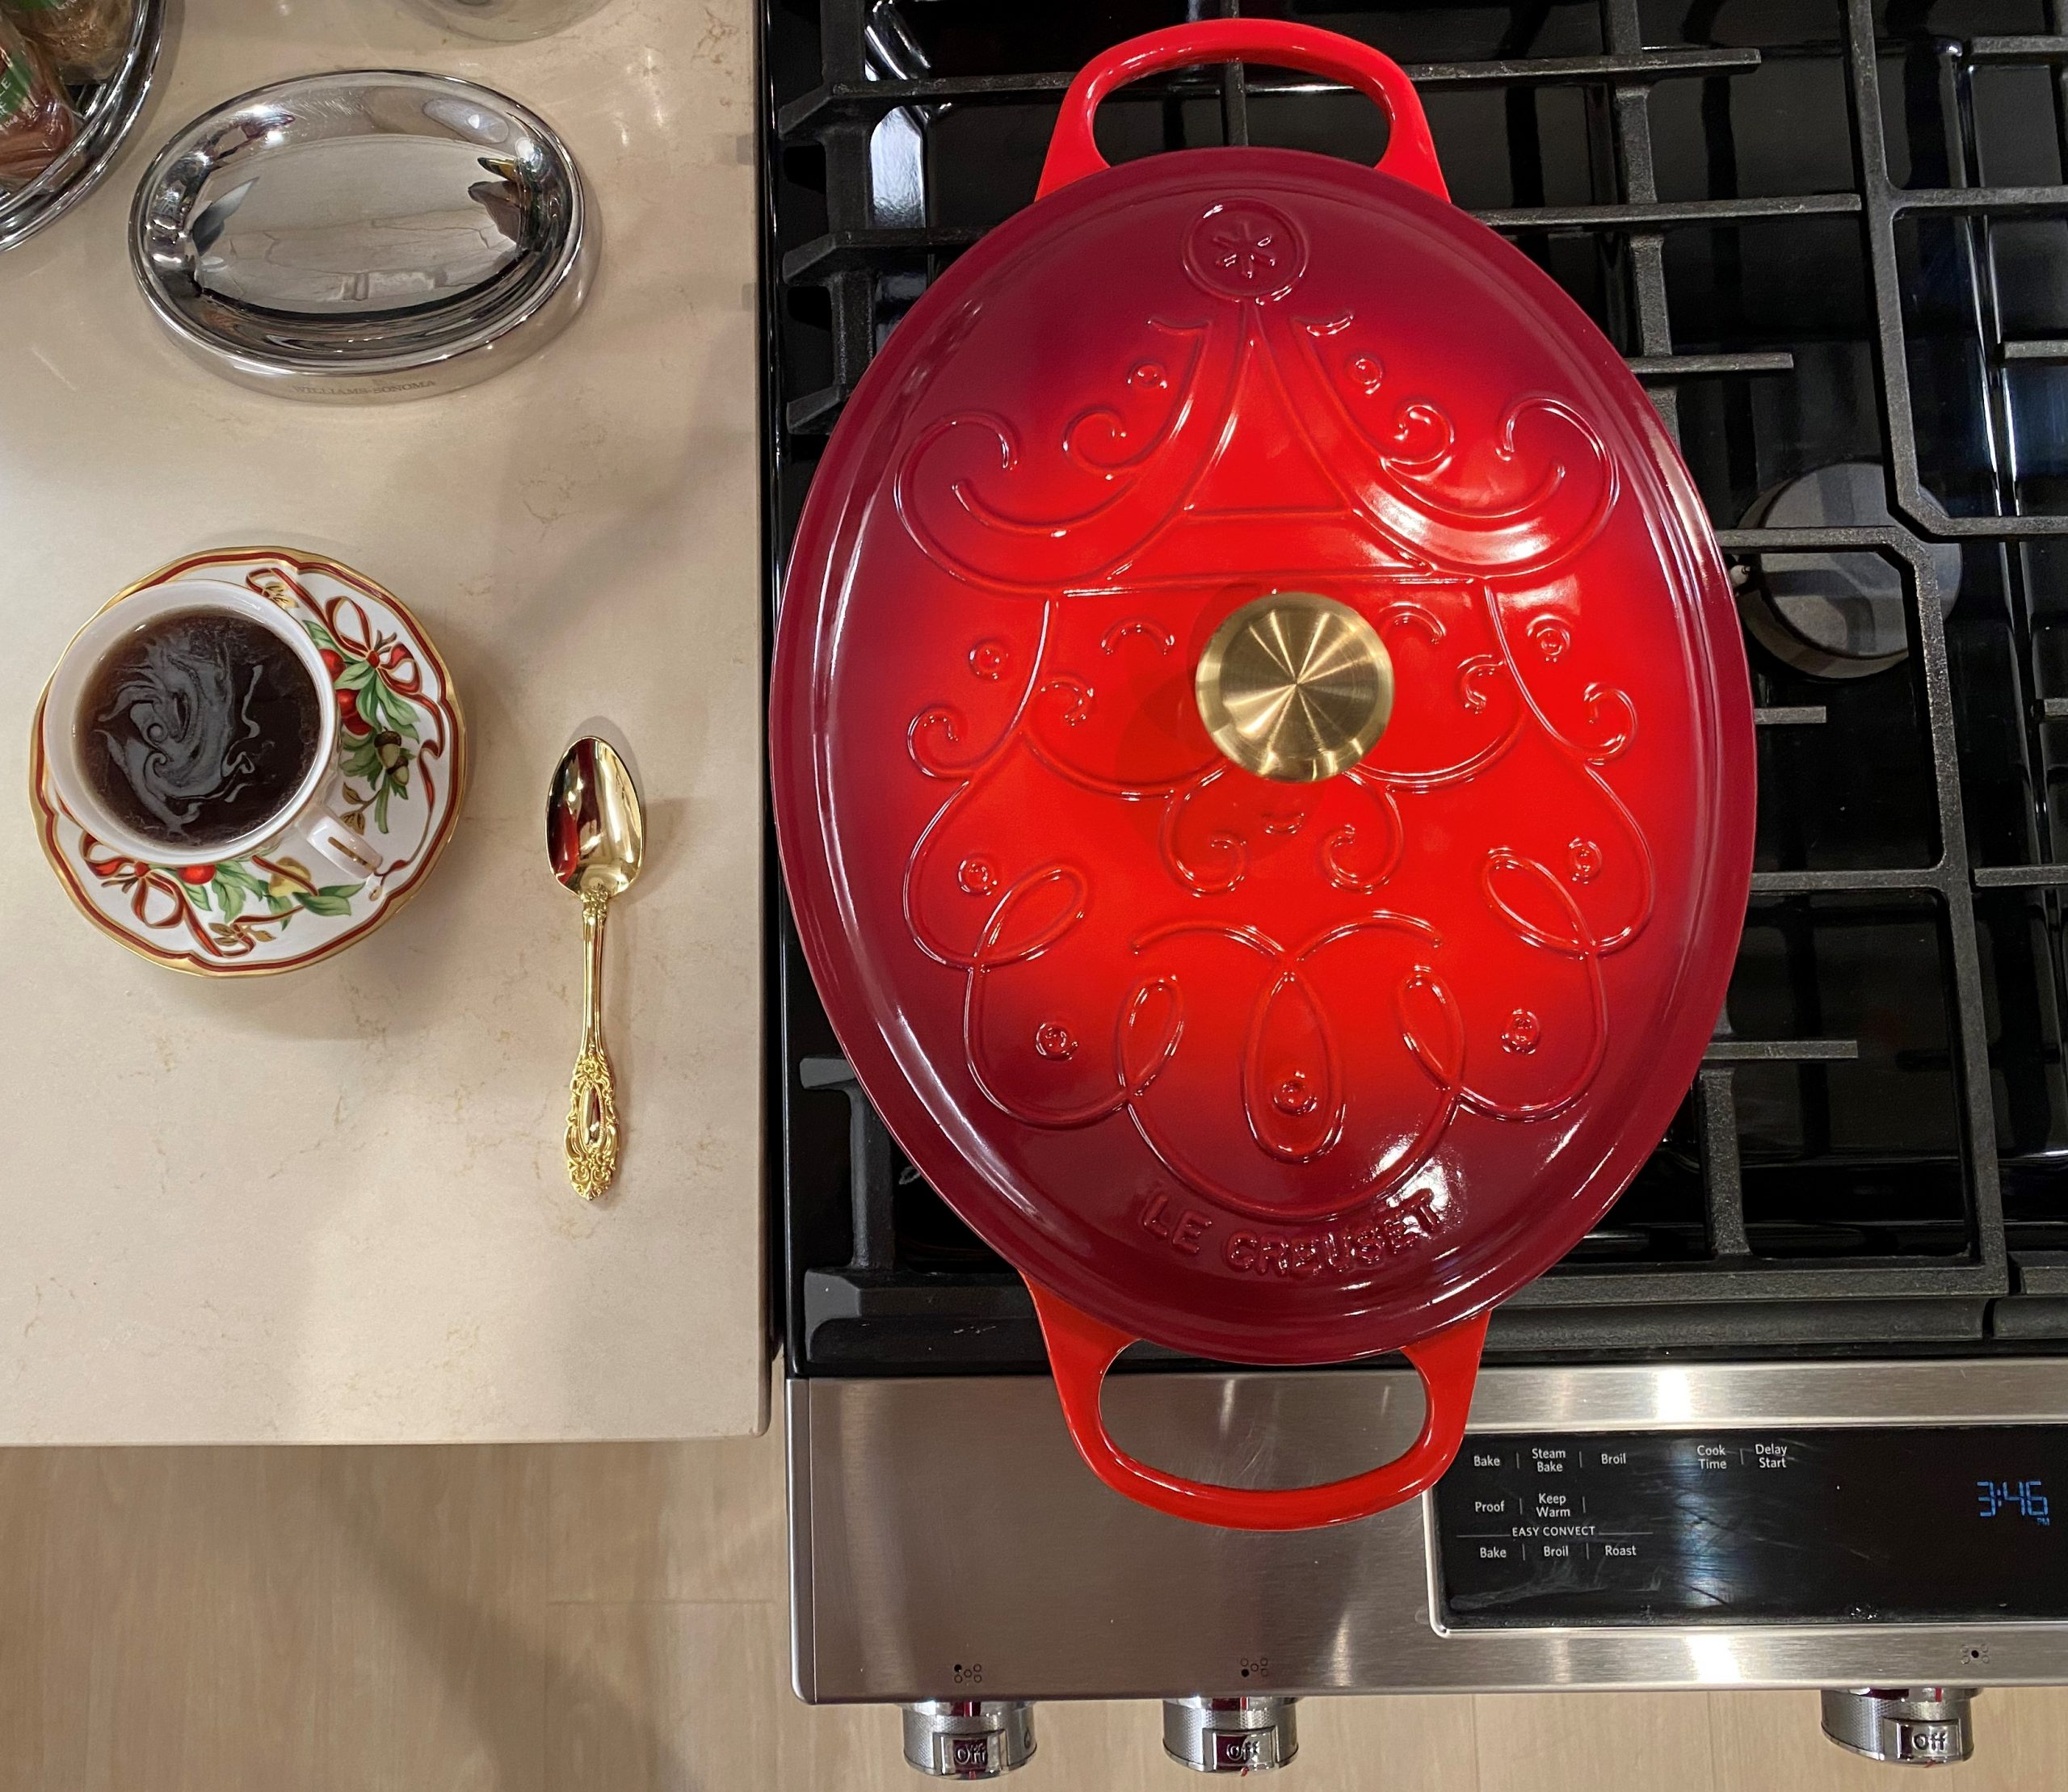 Joshua and Aaron Kennon-Green - Pairing Tiffany Holiday China with Le Creuset Noel Dutch Oven